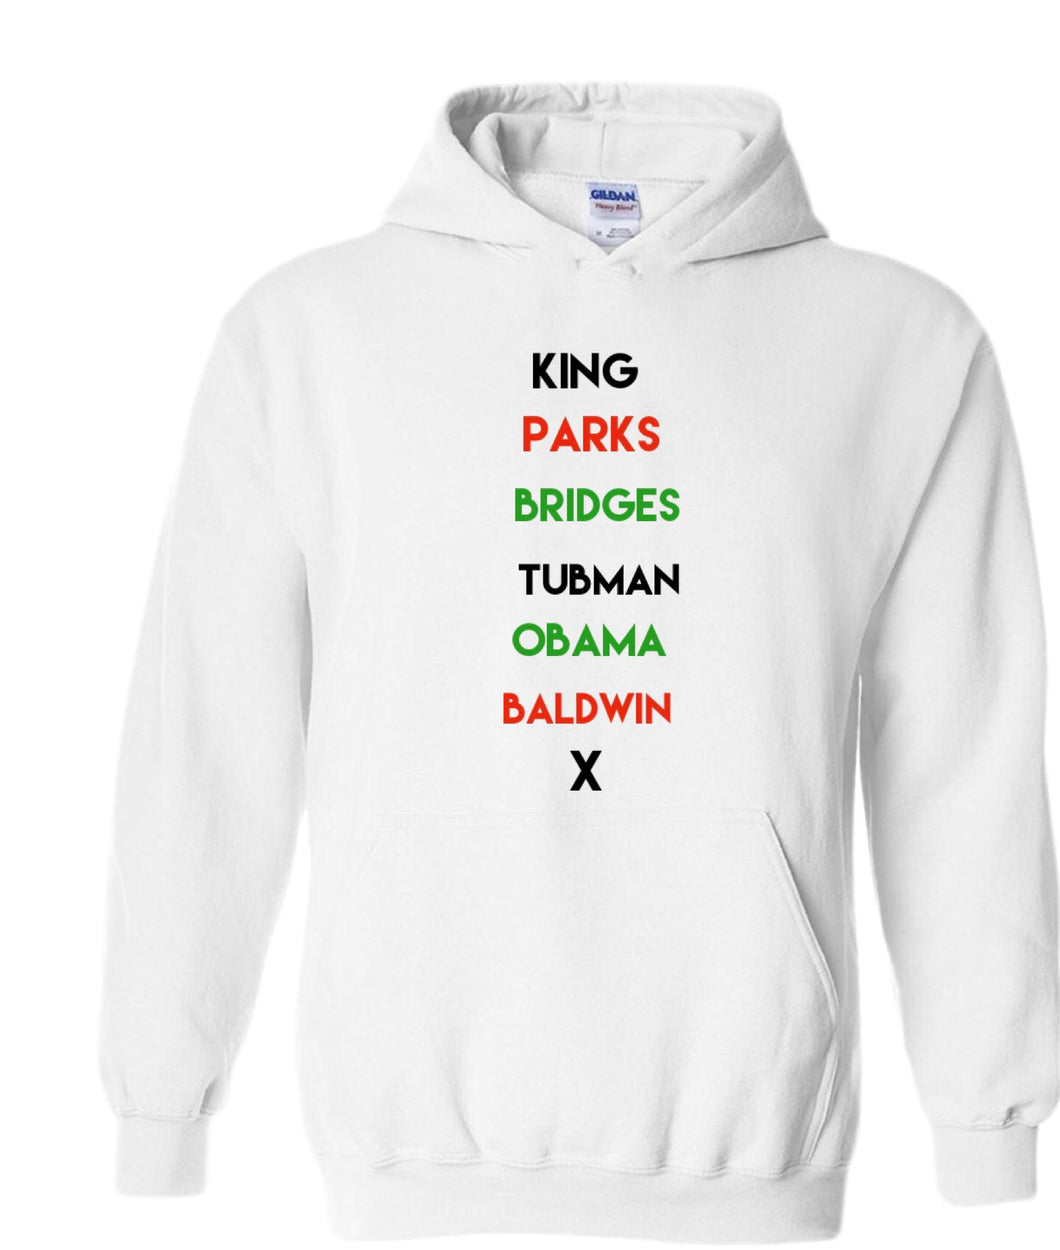 Kids Historical Figures (BHM inspired) hoodies